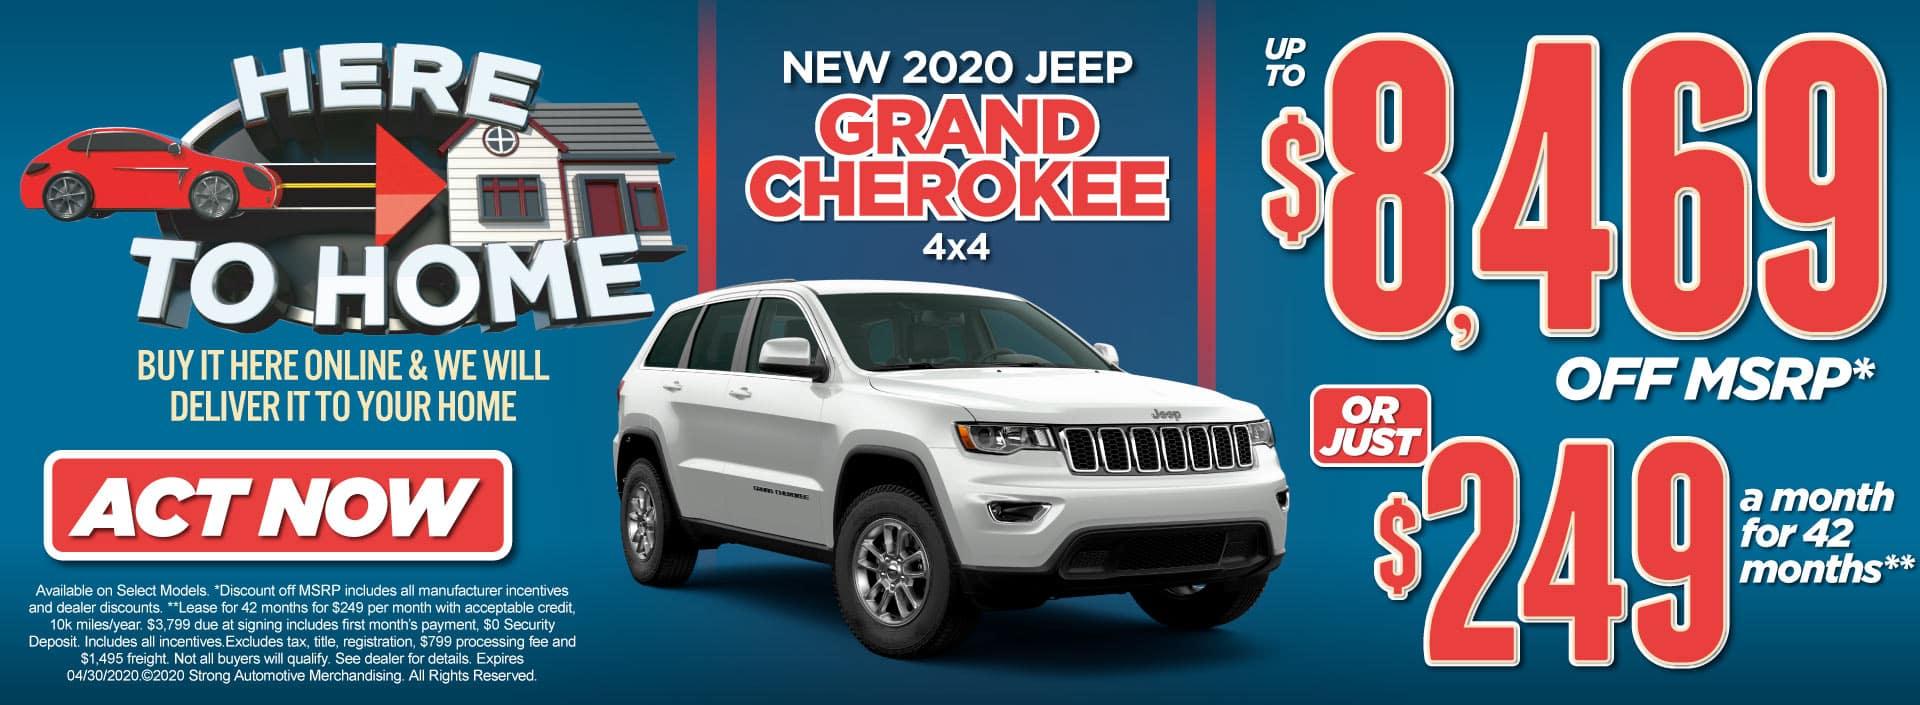 New 2020 Jeep Grand Cherokee Special Act Now